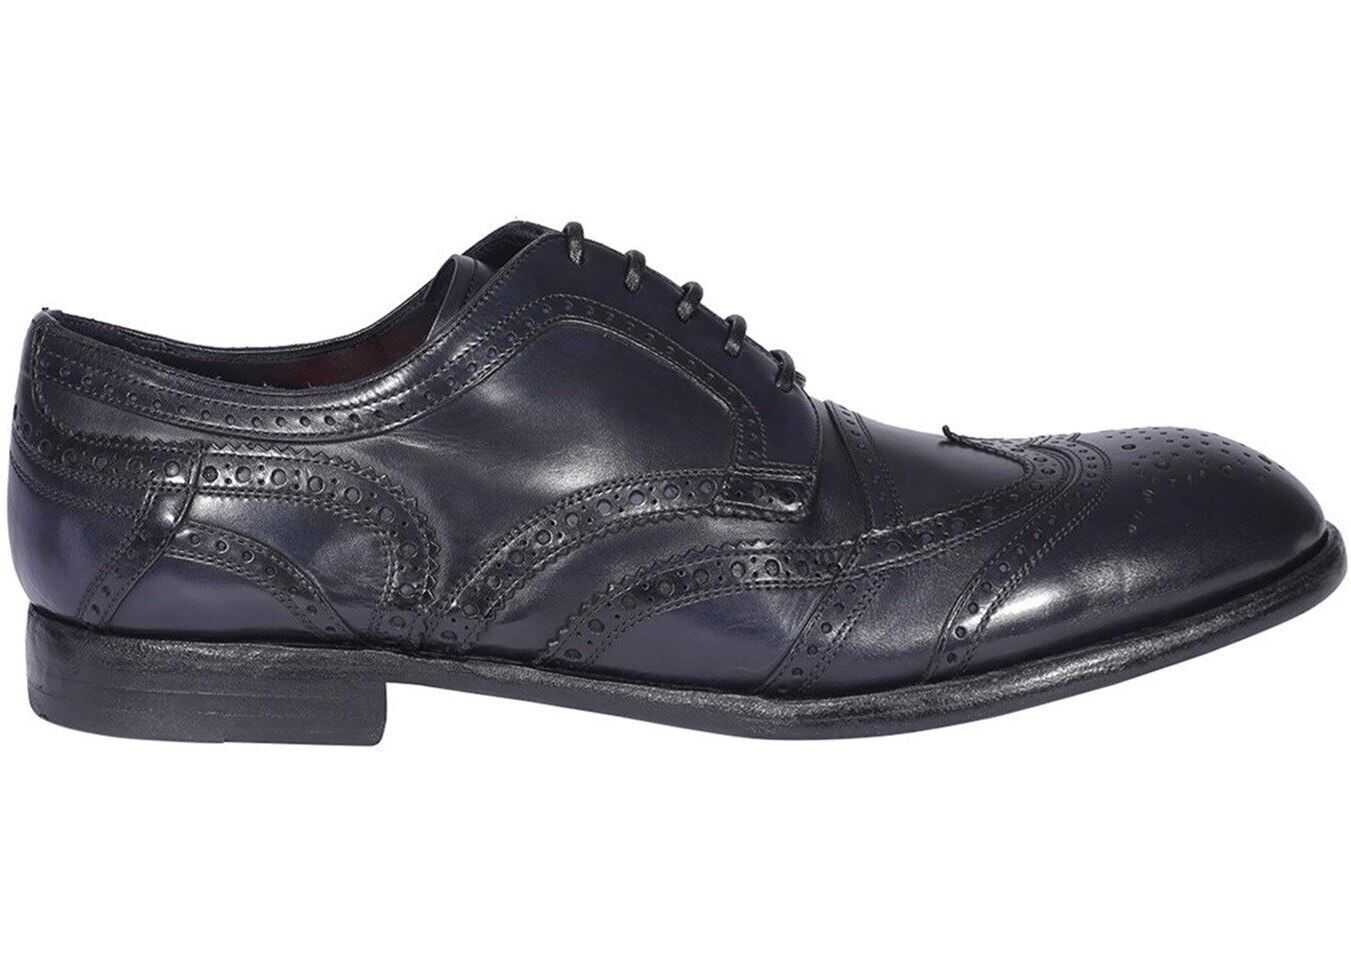 Dolce & Gabbana Leather Derby Shoes In Blue A10665A182887577 Blue imagine b-mall.ro